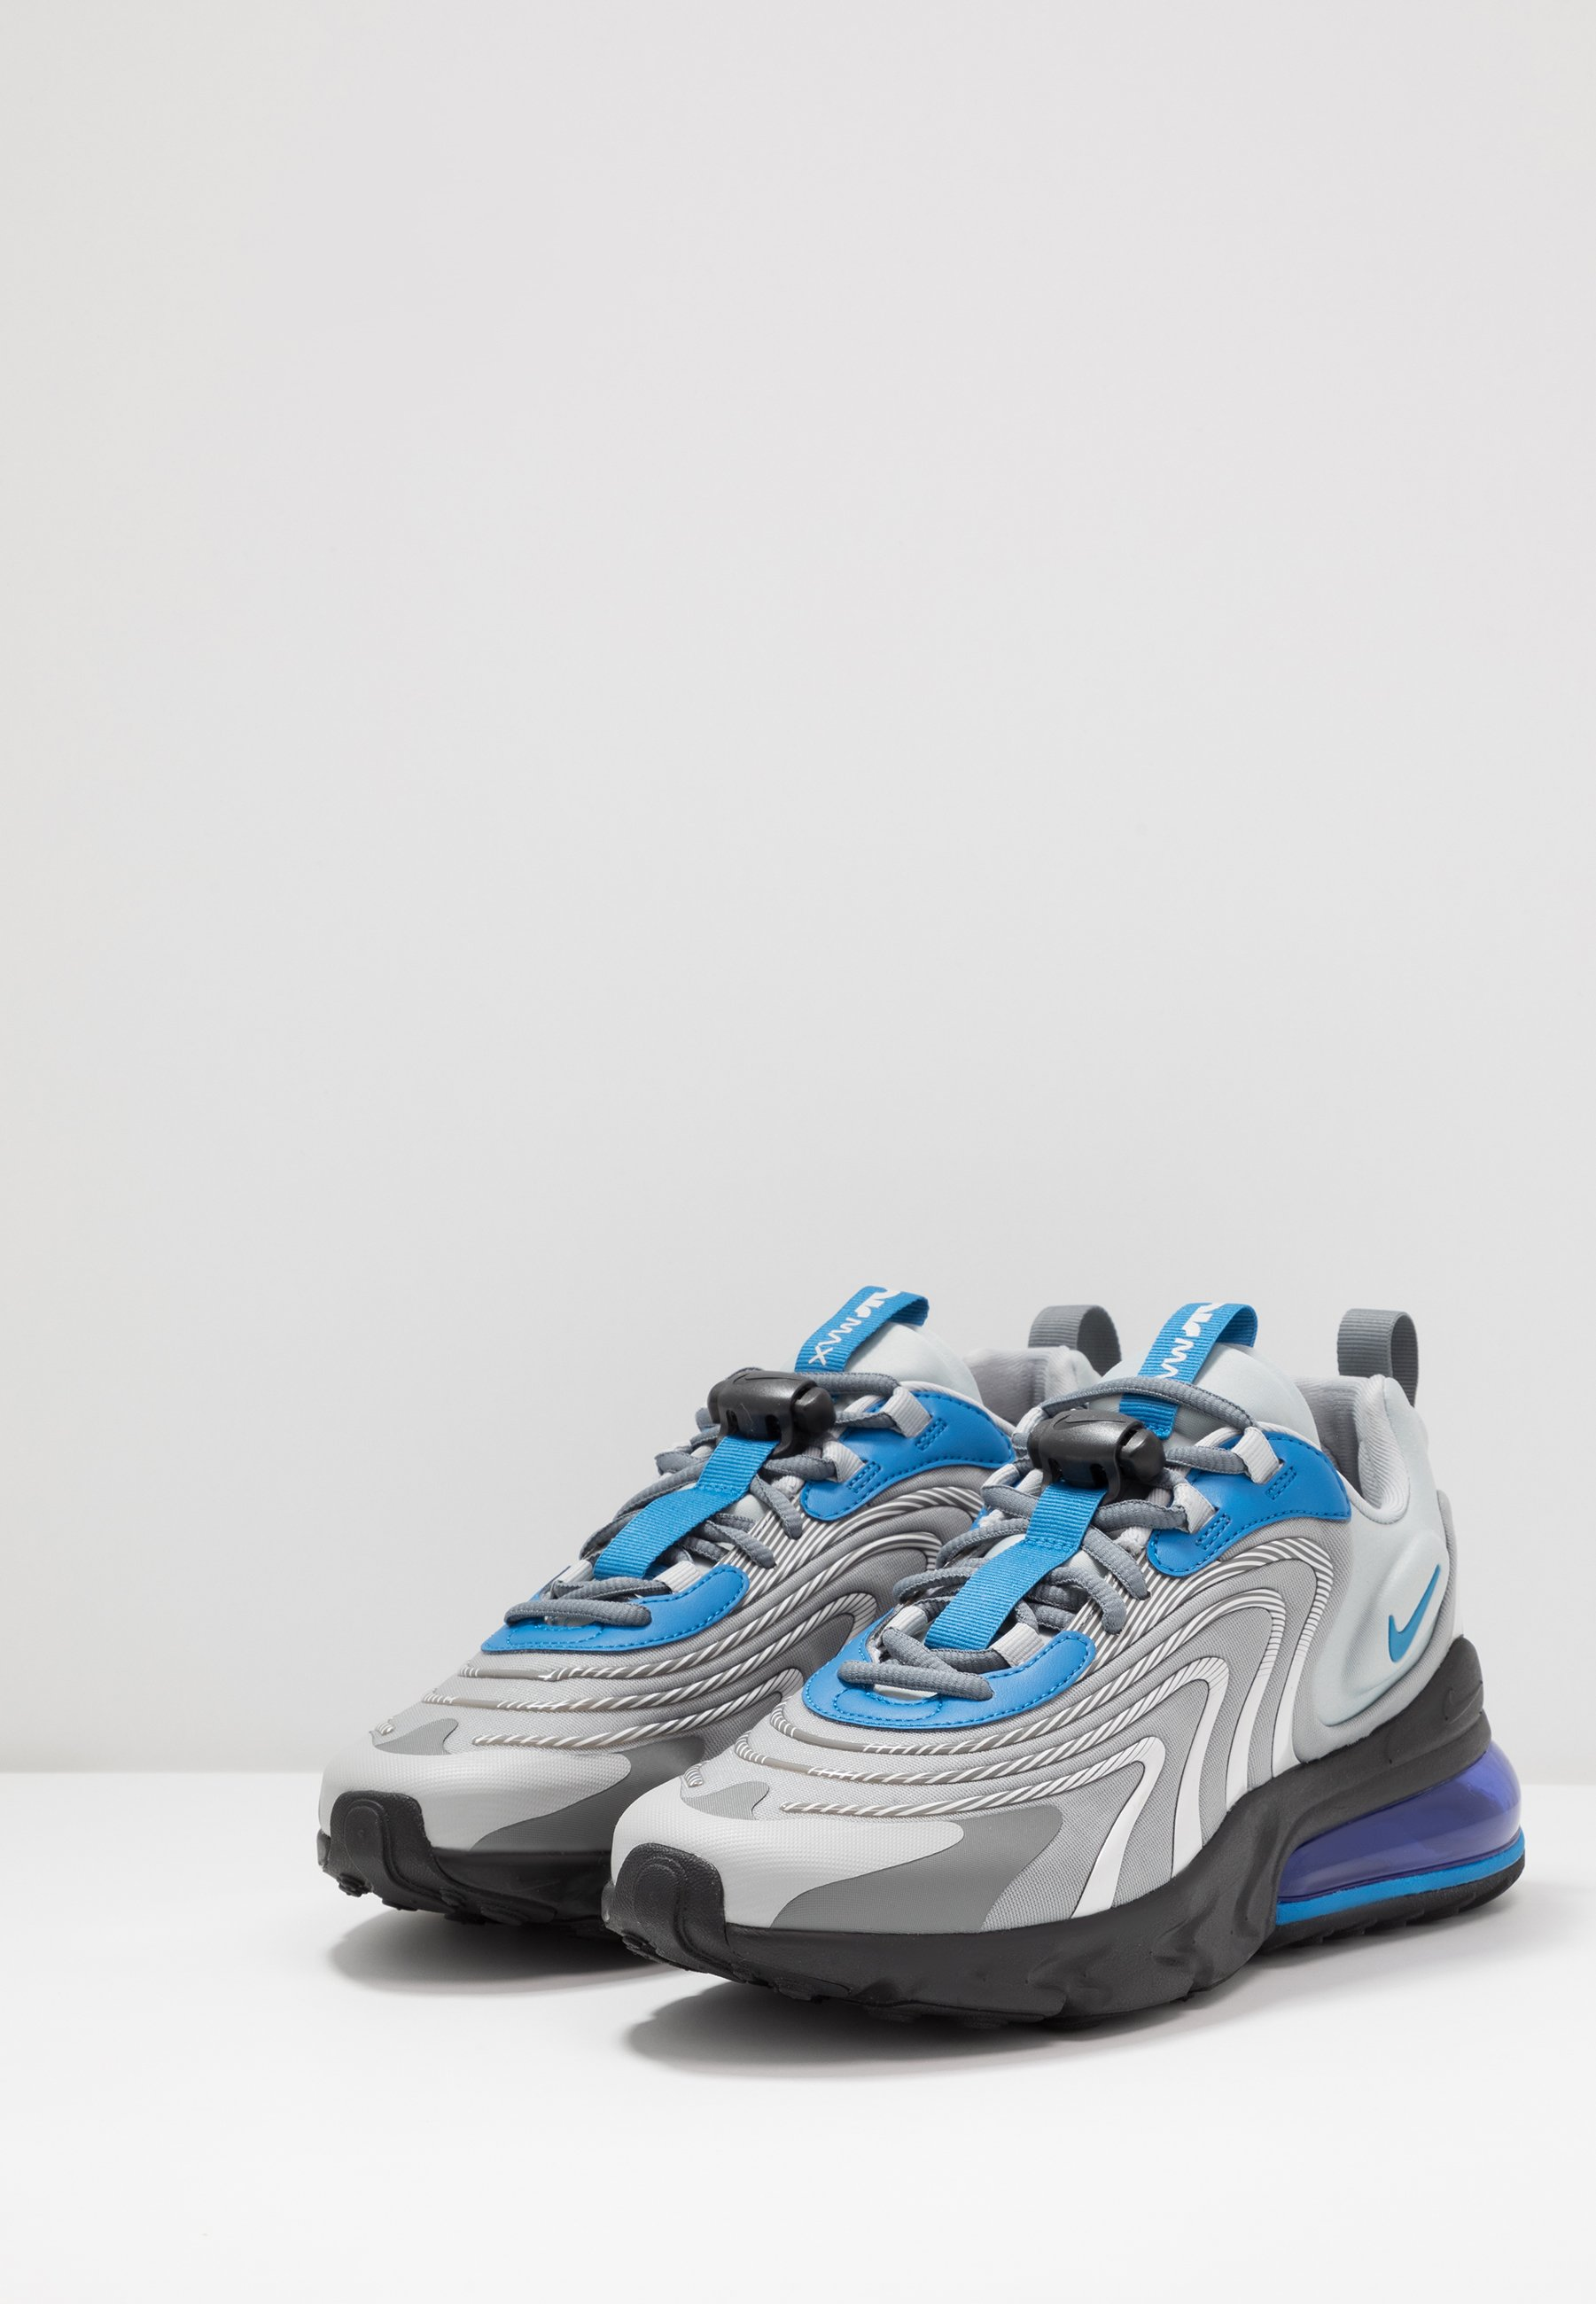 AIR MAX 270 REACT ENG Sneakers laag light smoke greybattle bluesmoke greyblackhyper bluewhite